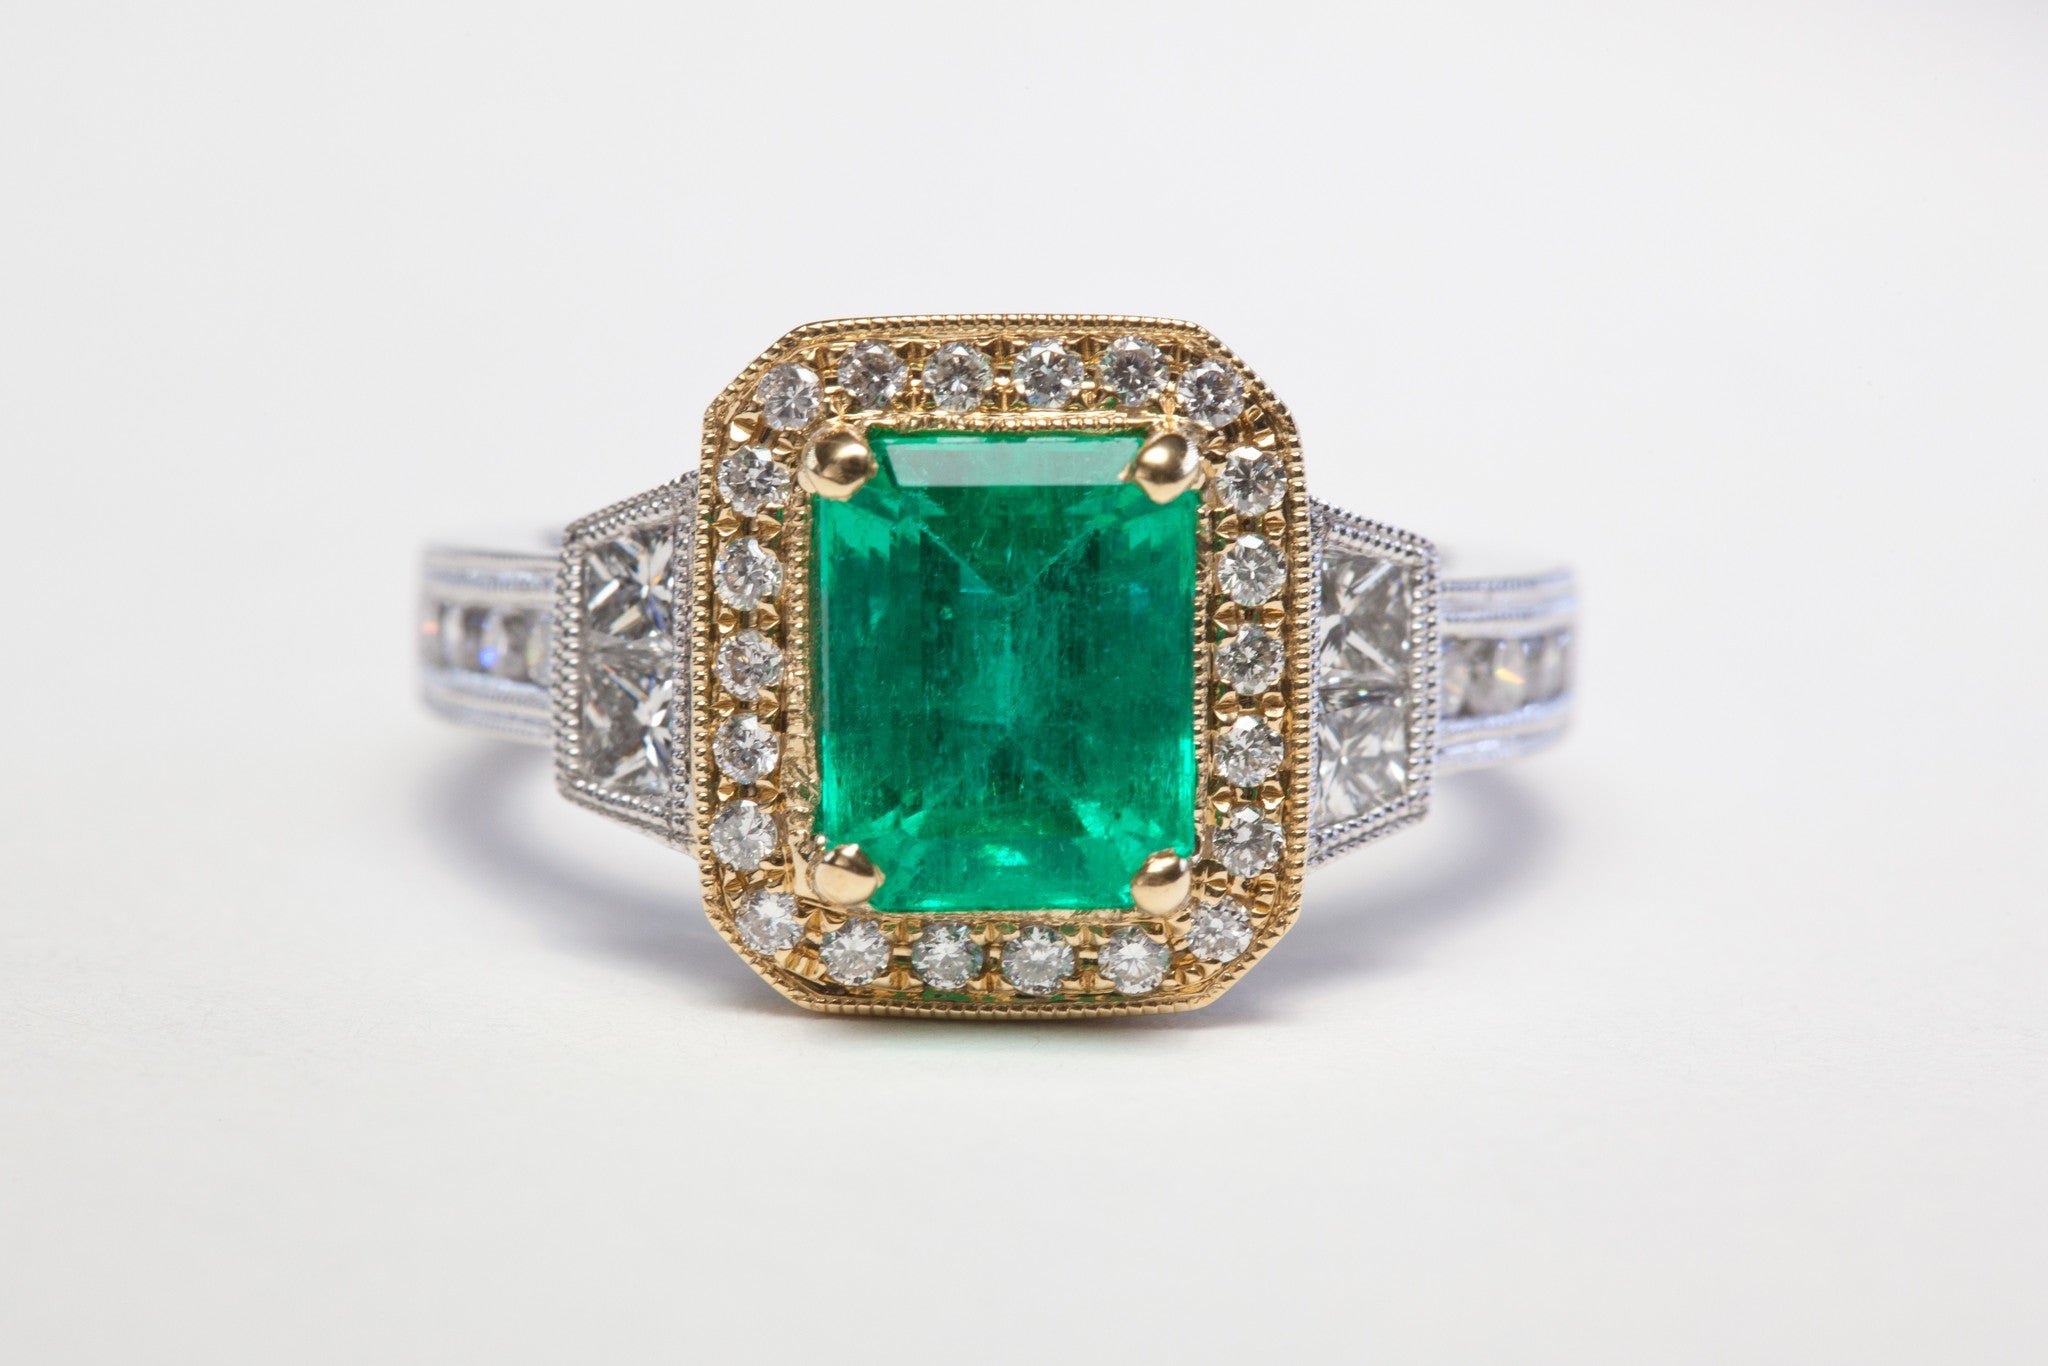 green jewellery jewelry emerald stone models printable stl model ring rings print